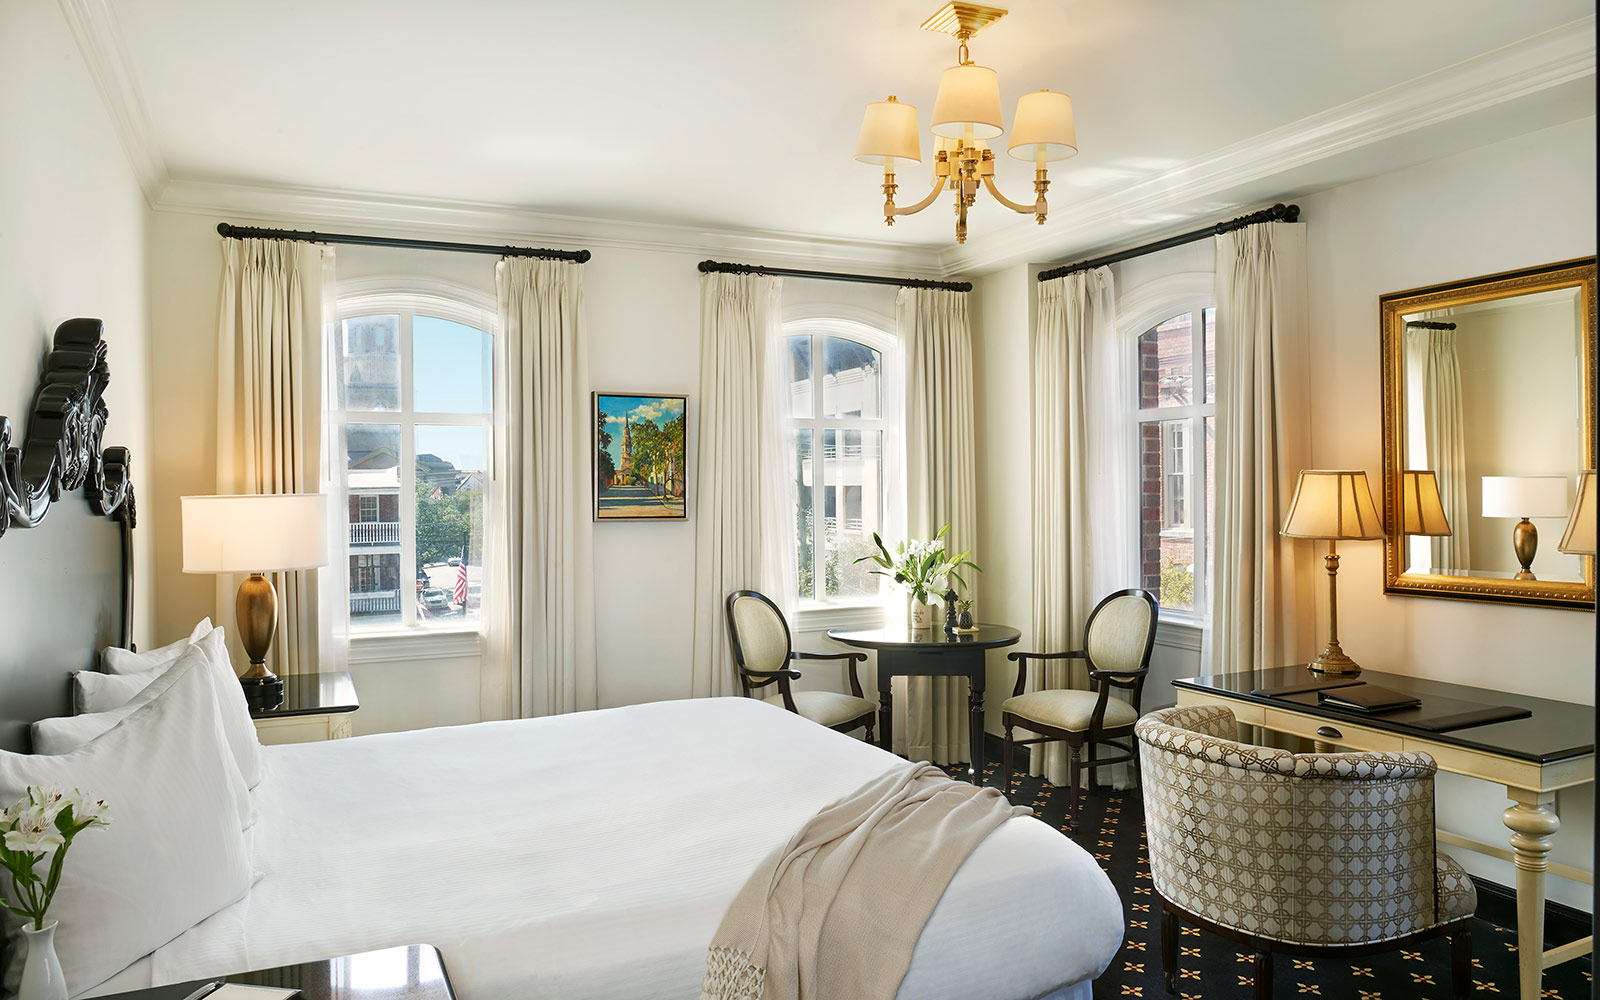 French Quarter Inn: Charleston, South Carolina